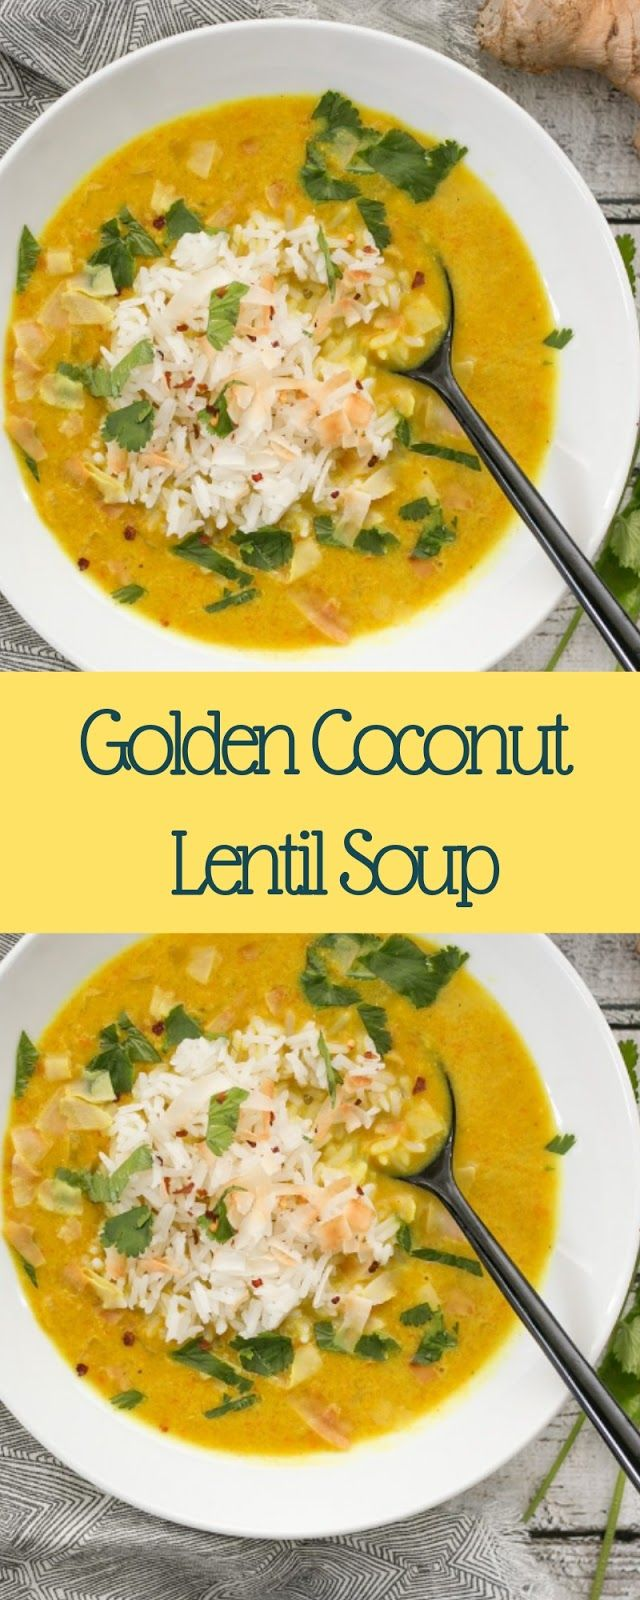 Golden Coconut Lentil Soup | Velia Kitchen